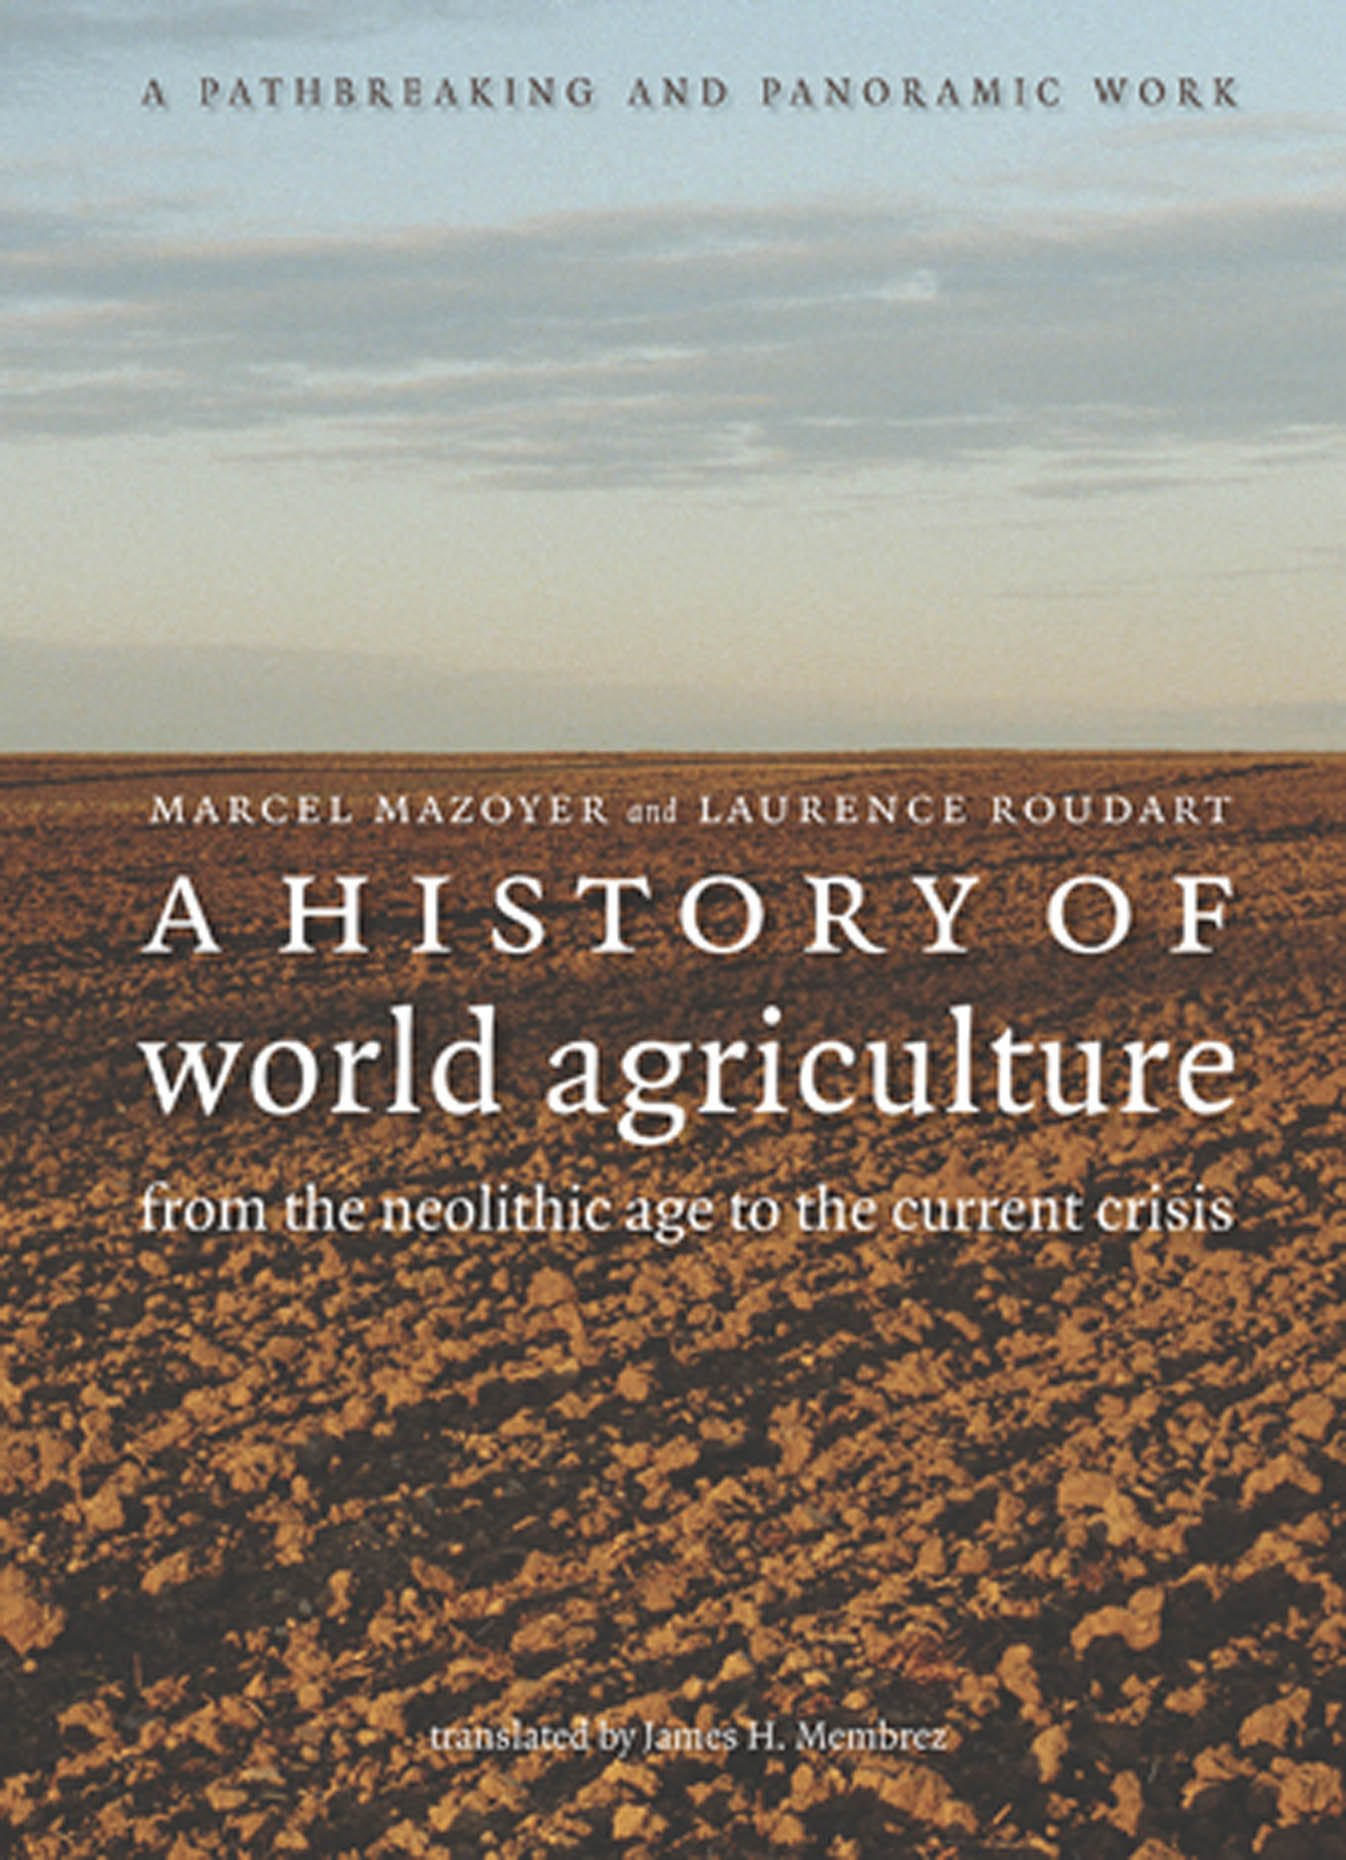 A History of World Agriculture: From the Neolithic Age to the Current Crisis